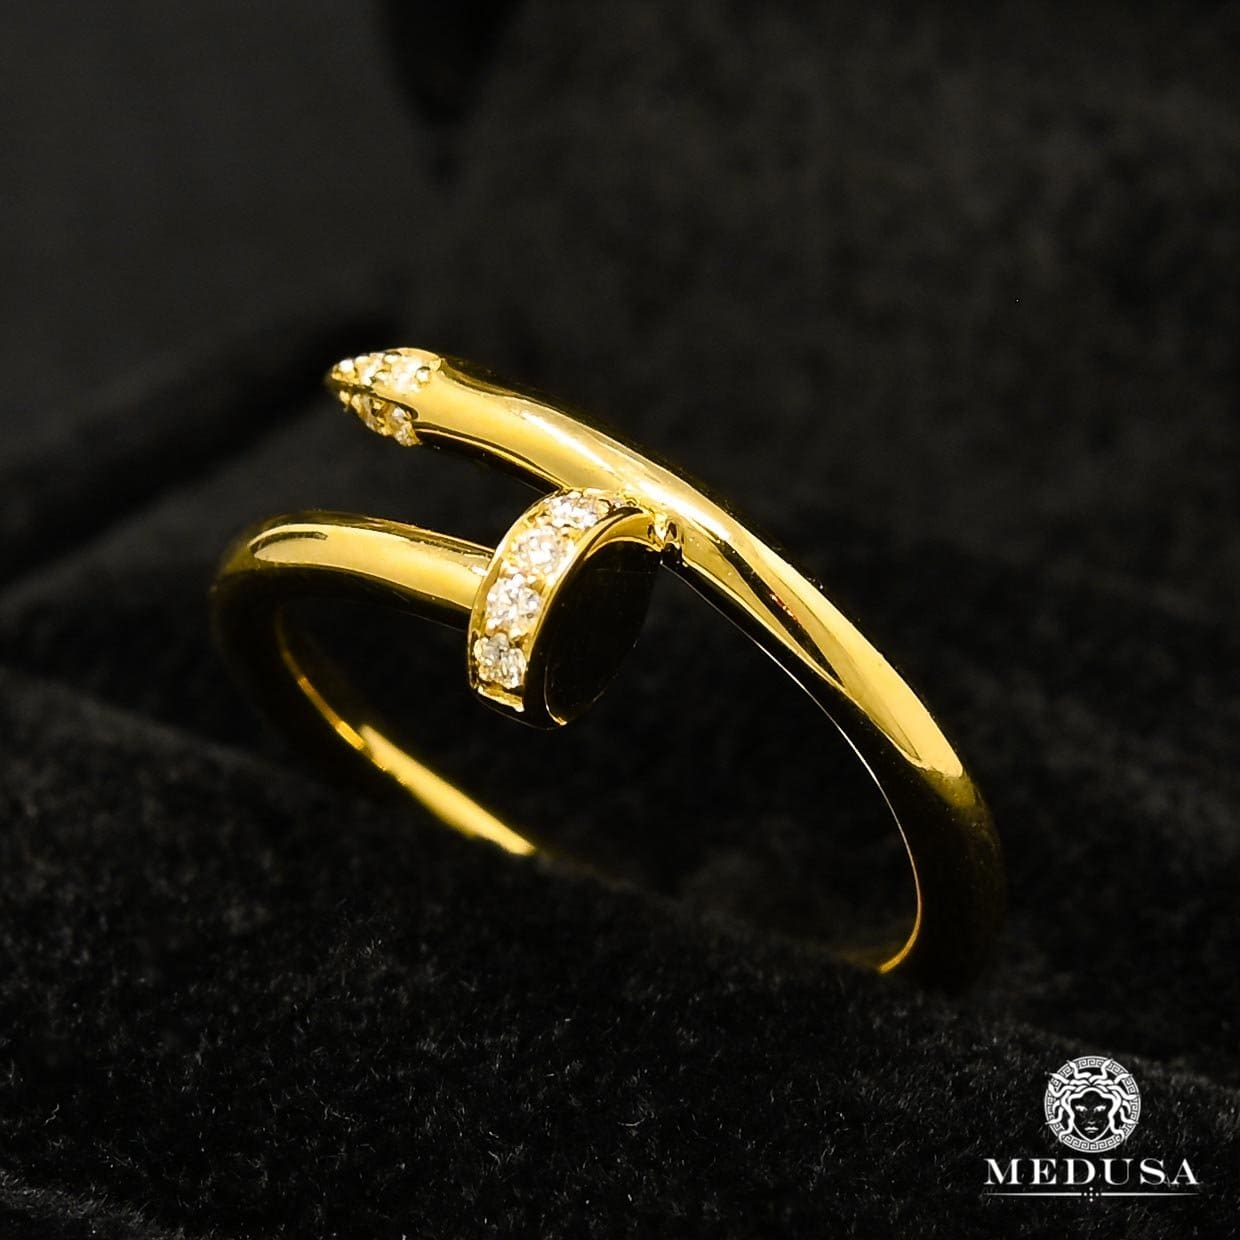 Bague à Diamants en Or 18K | Bague Femme Clou D1 - Diamant Or Jaune